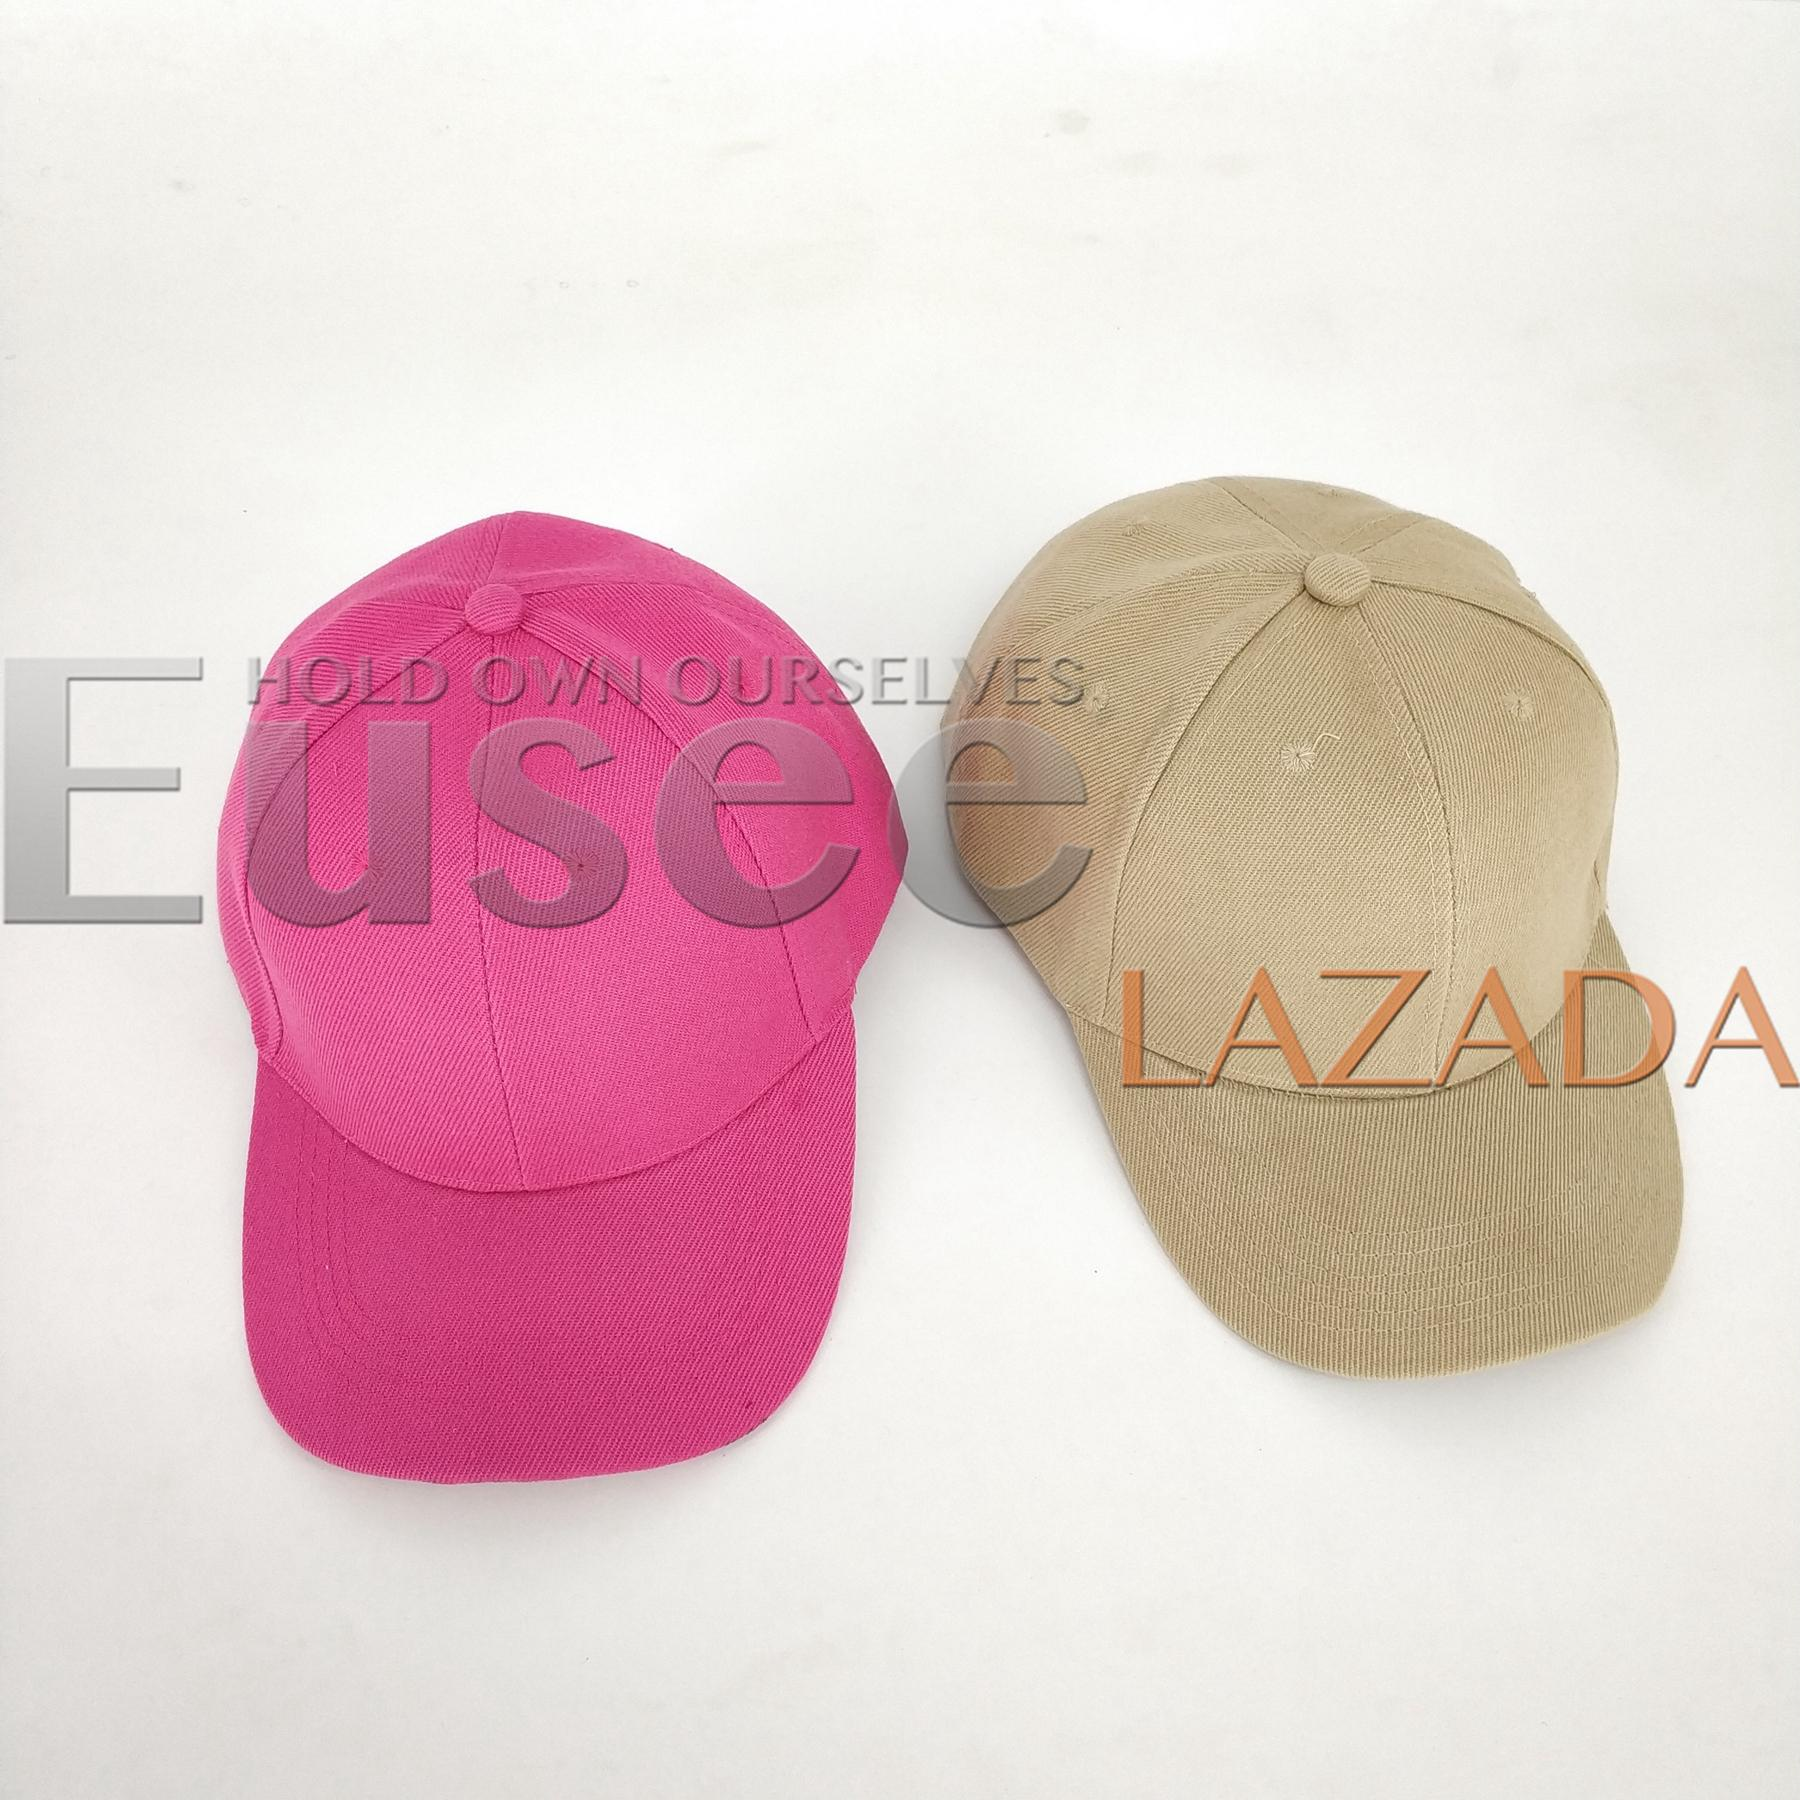 Hats for Men for sale - Mens Hats online brands, prices   reviews in  Philippines   Lazada.com.ph 9e174fd15e2